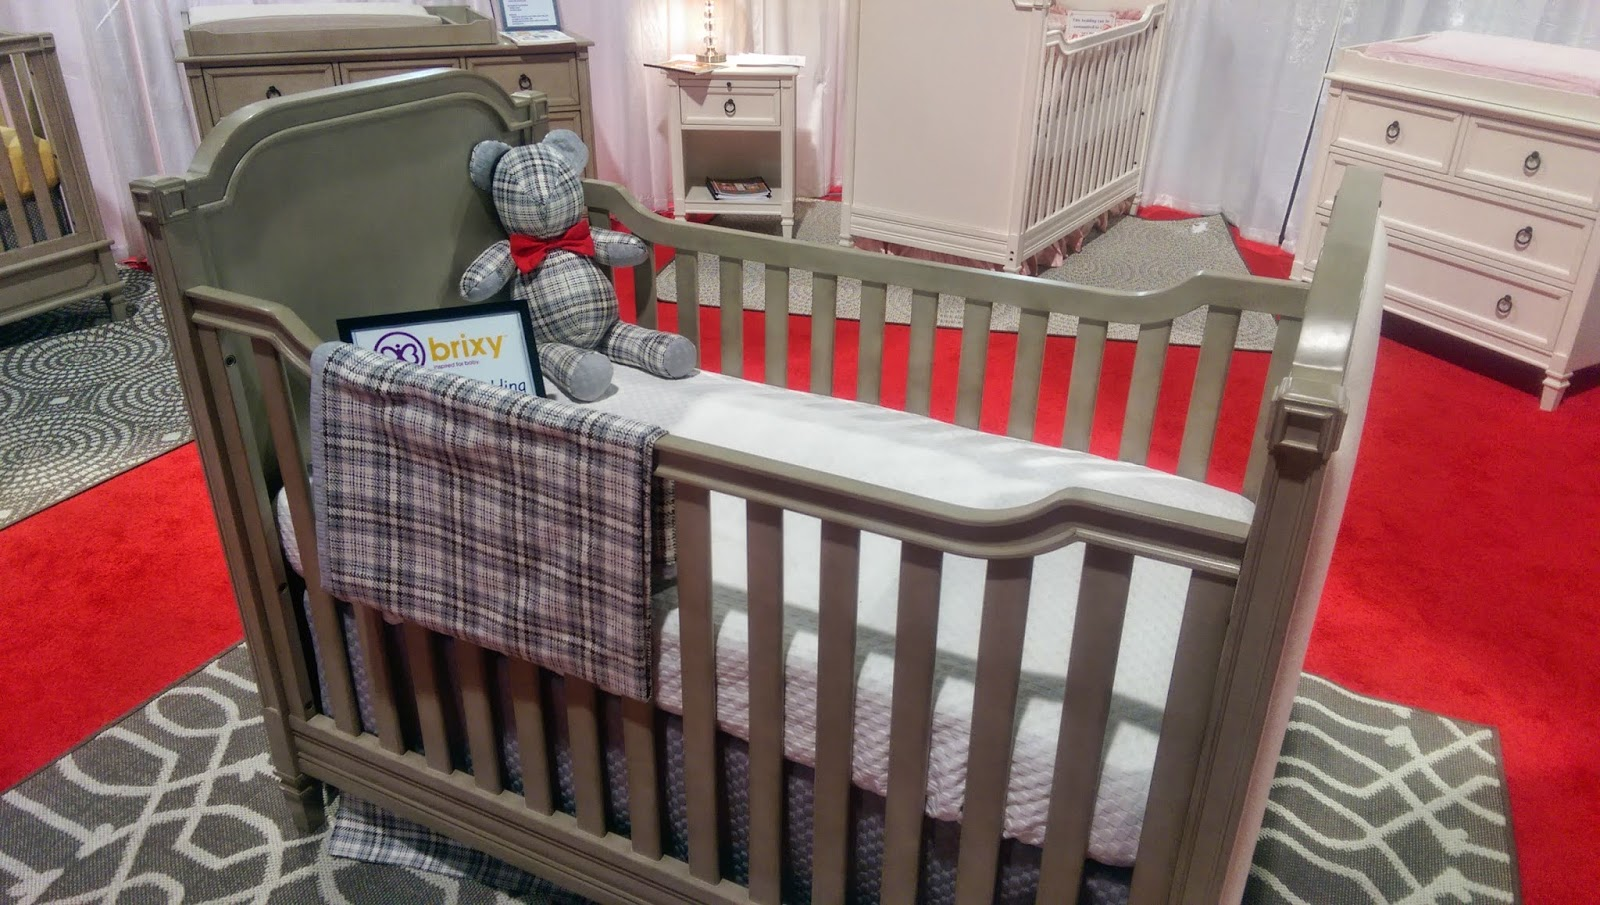 Baby cribs dublin - New Brixy Haven Baby Furniture Collection